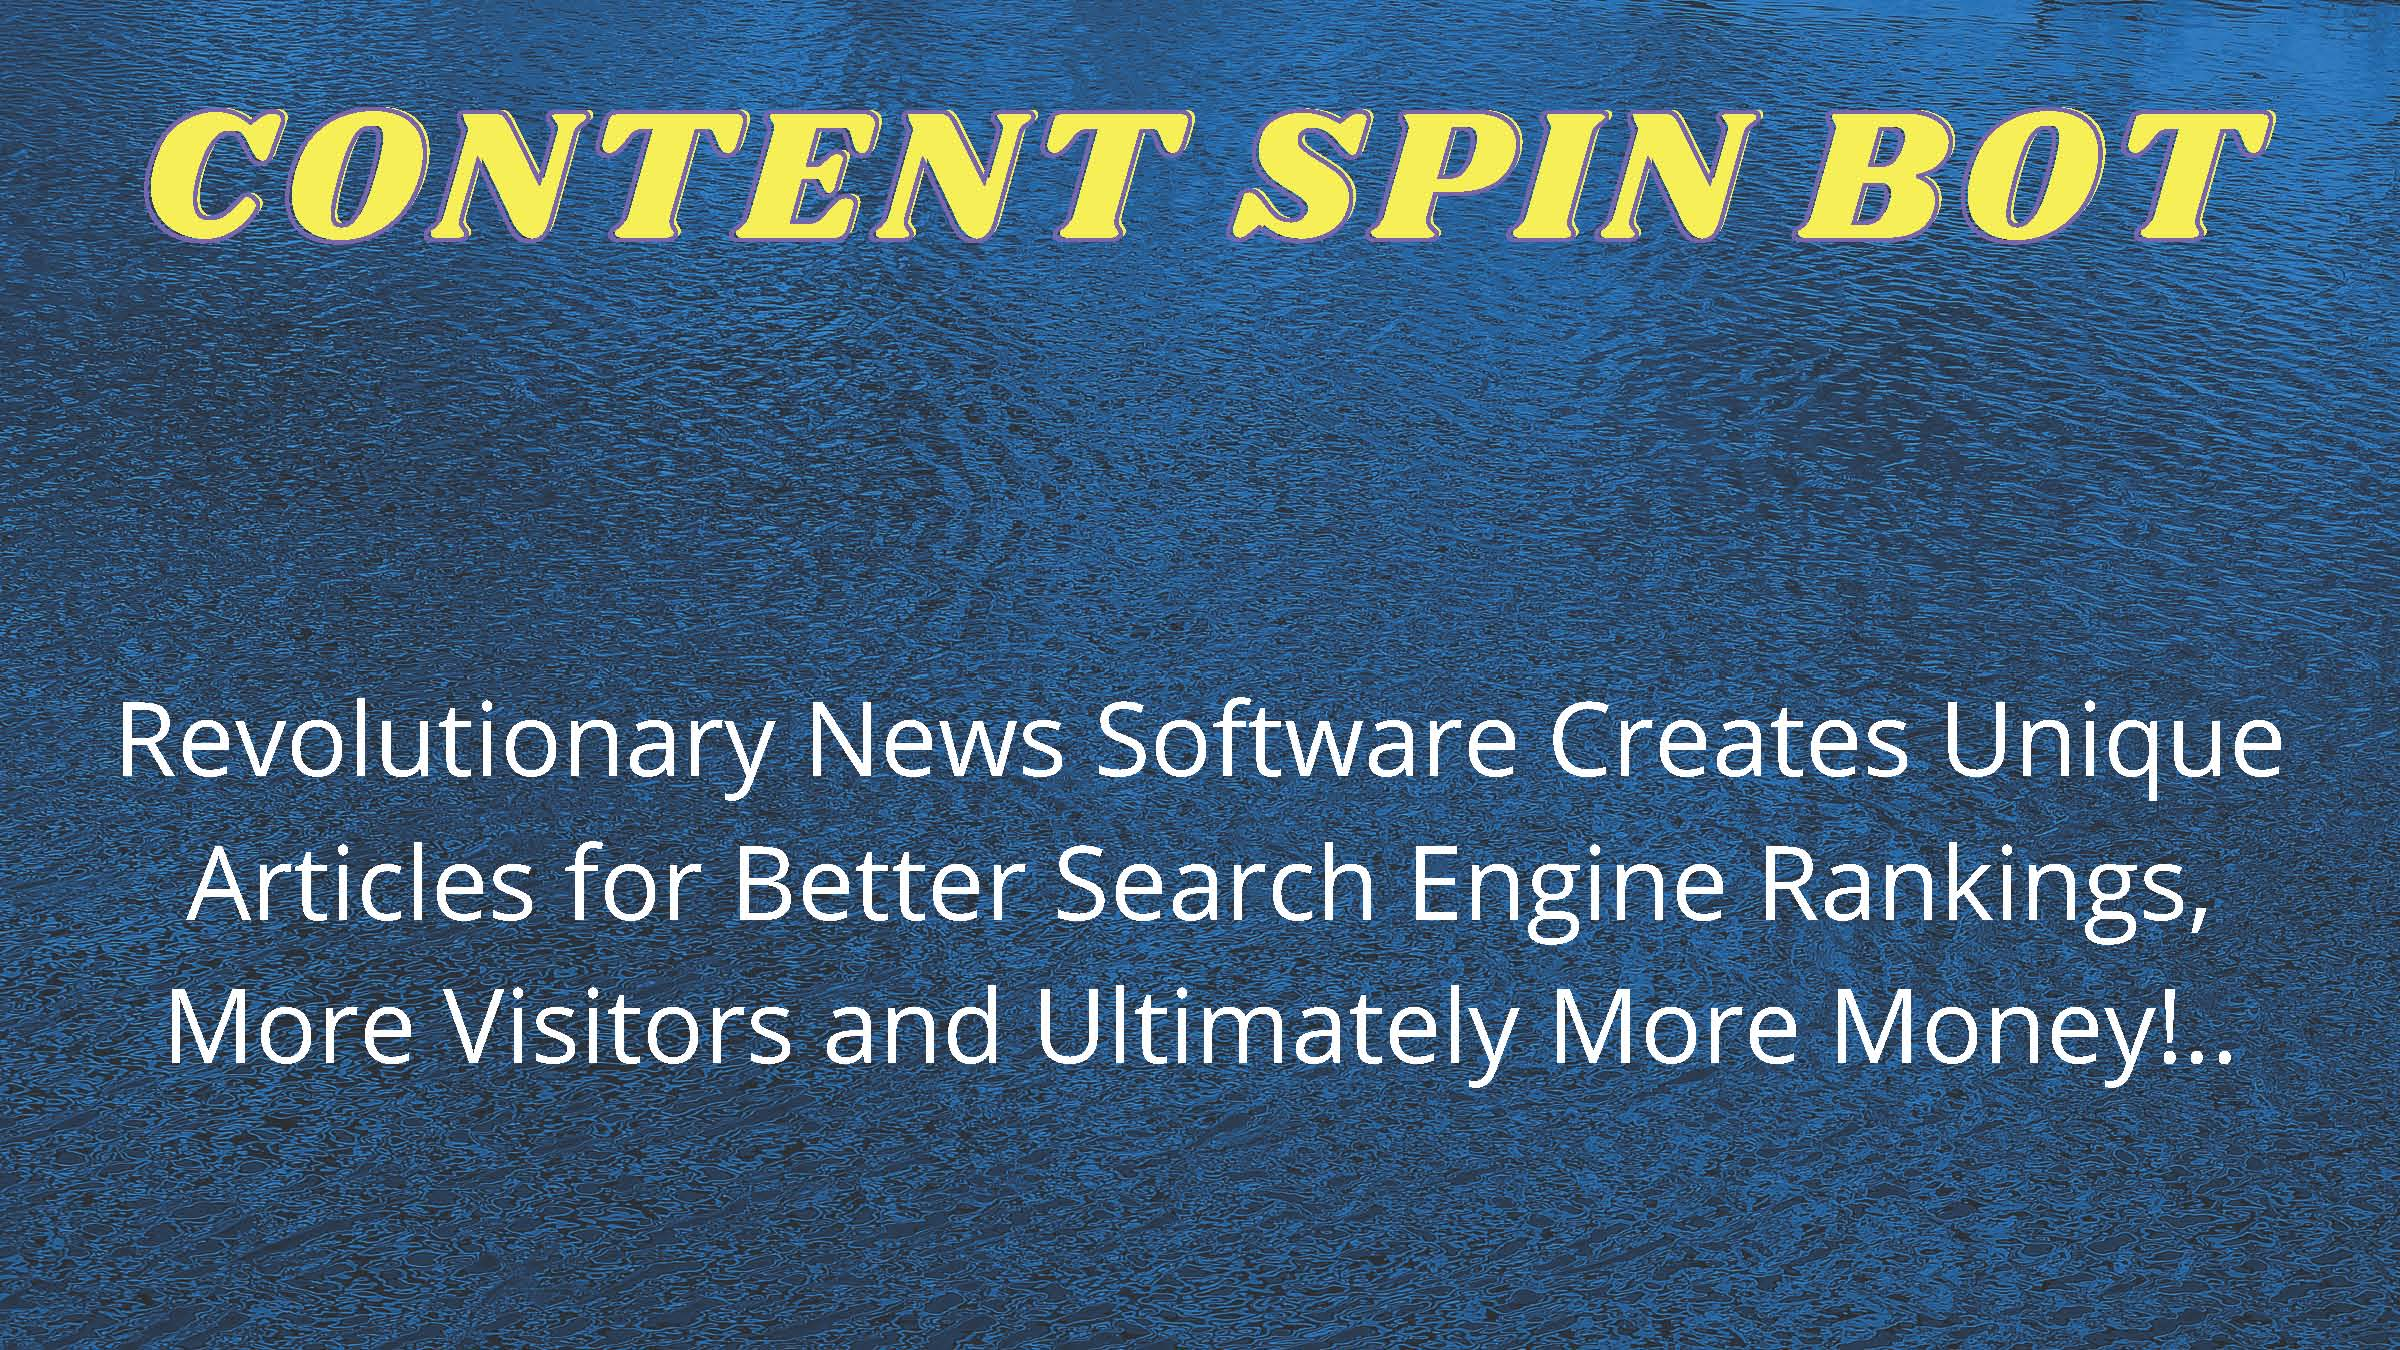 Content Spin Bot Revolutionary News Software Unique Article